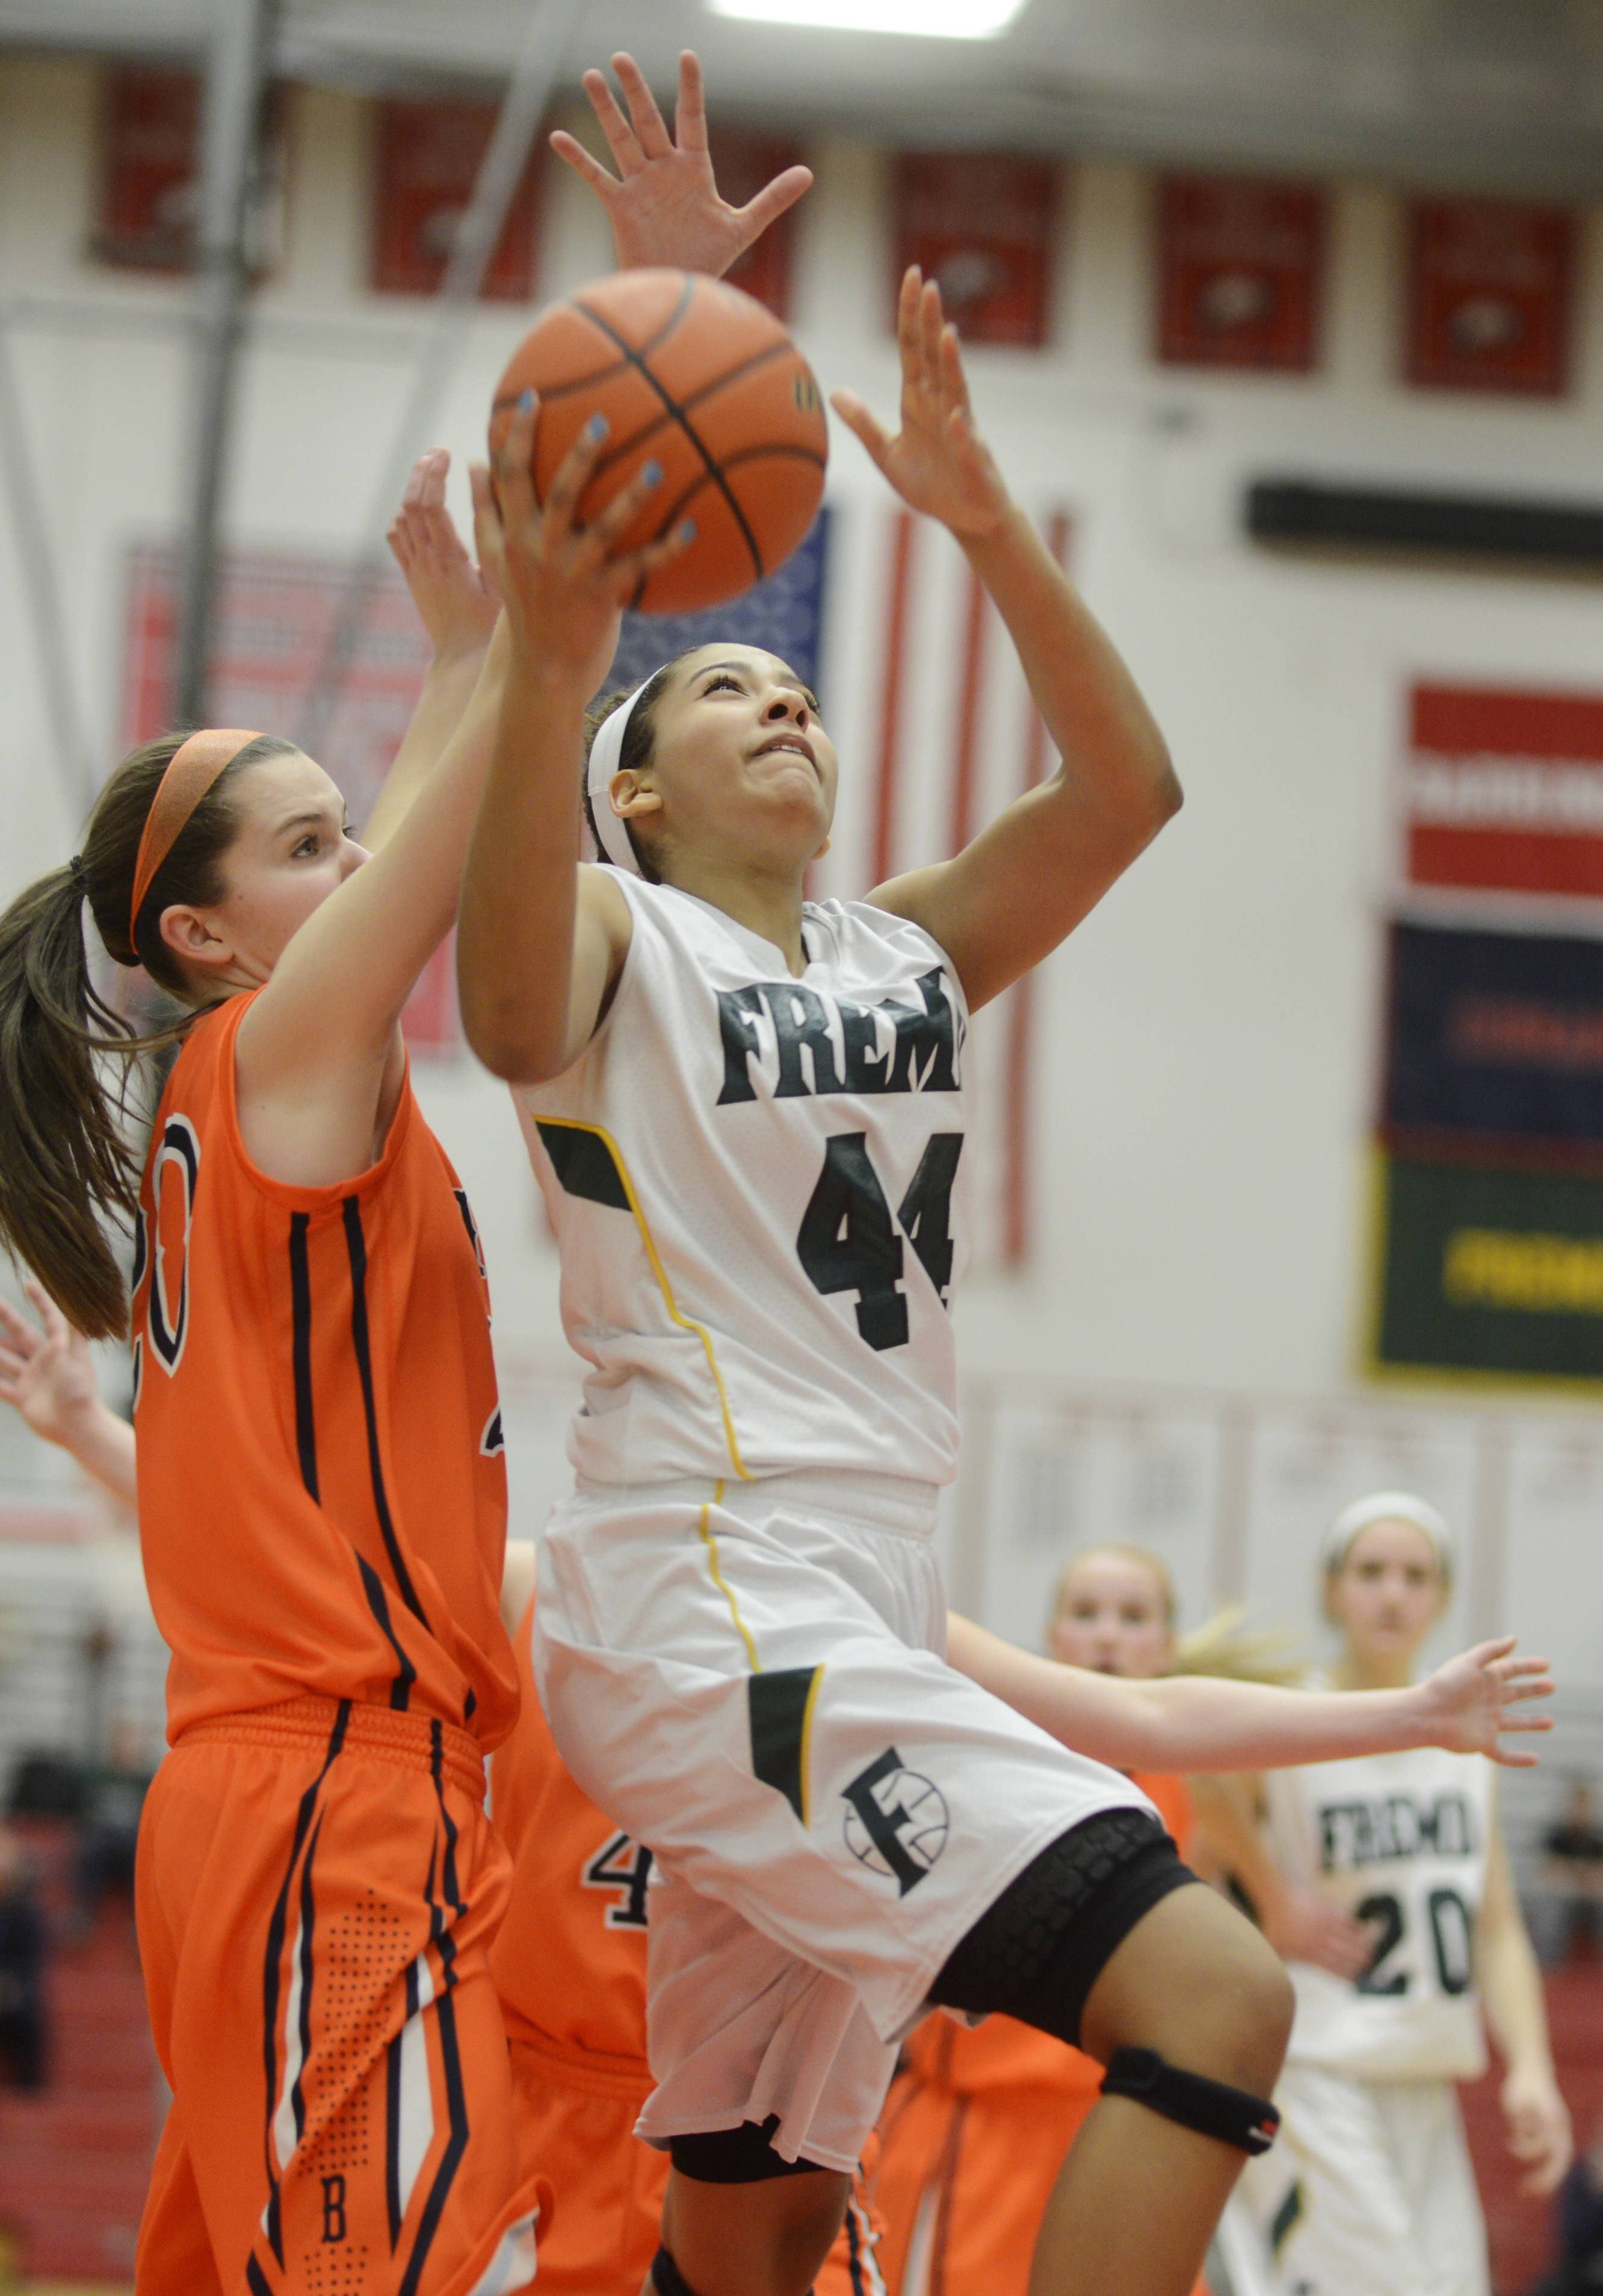 Fremd's Bryana Hopkins, right, drives to the basket against Buffalo Grove's Courtney Meyer.